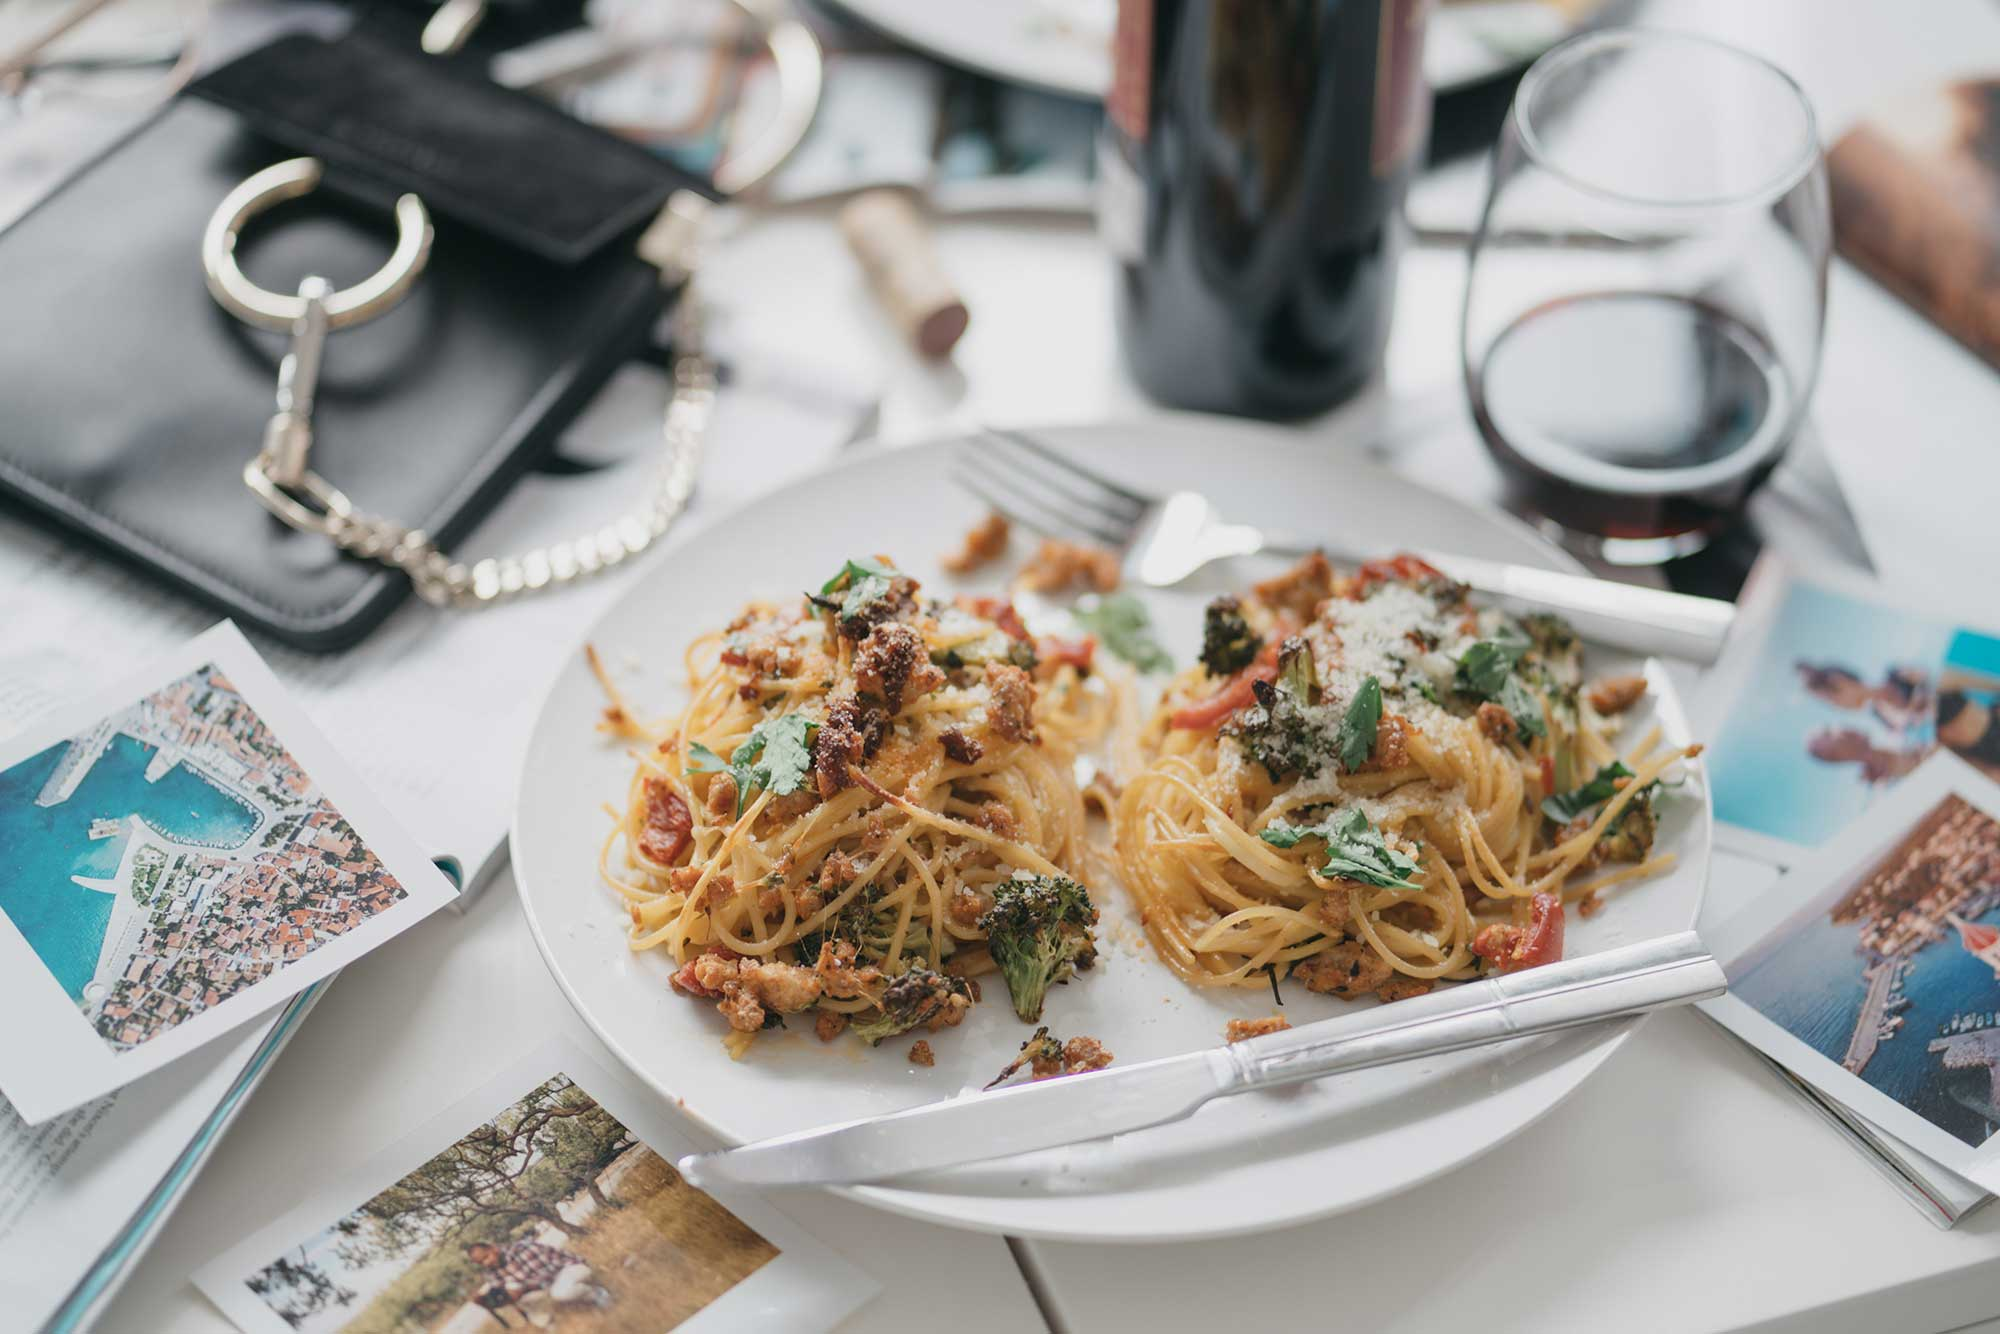 how-to-make-spagetti-nests-with-italian-sausage-broccoli-and-hot-cherry-peppers-flatlay-dinner-14.jpg